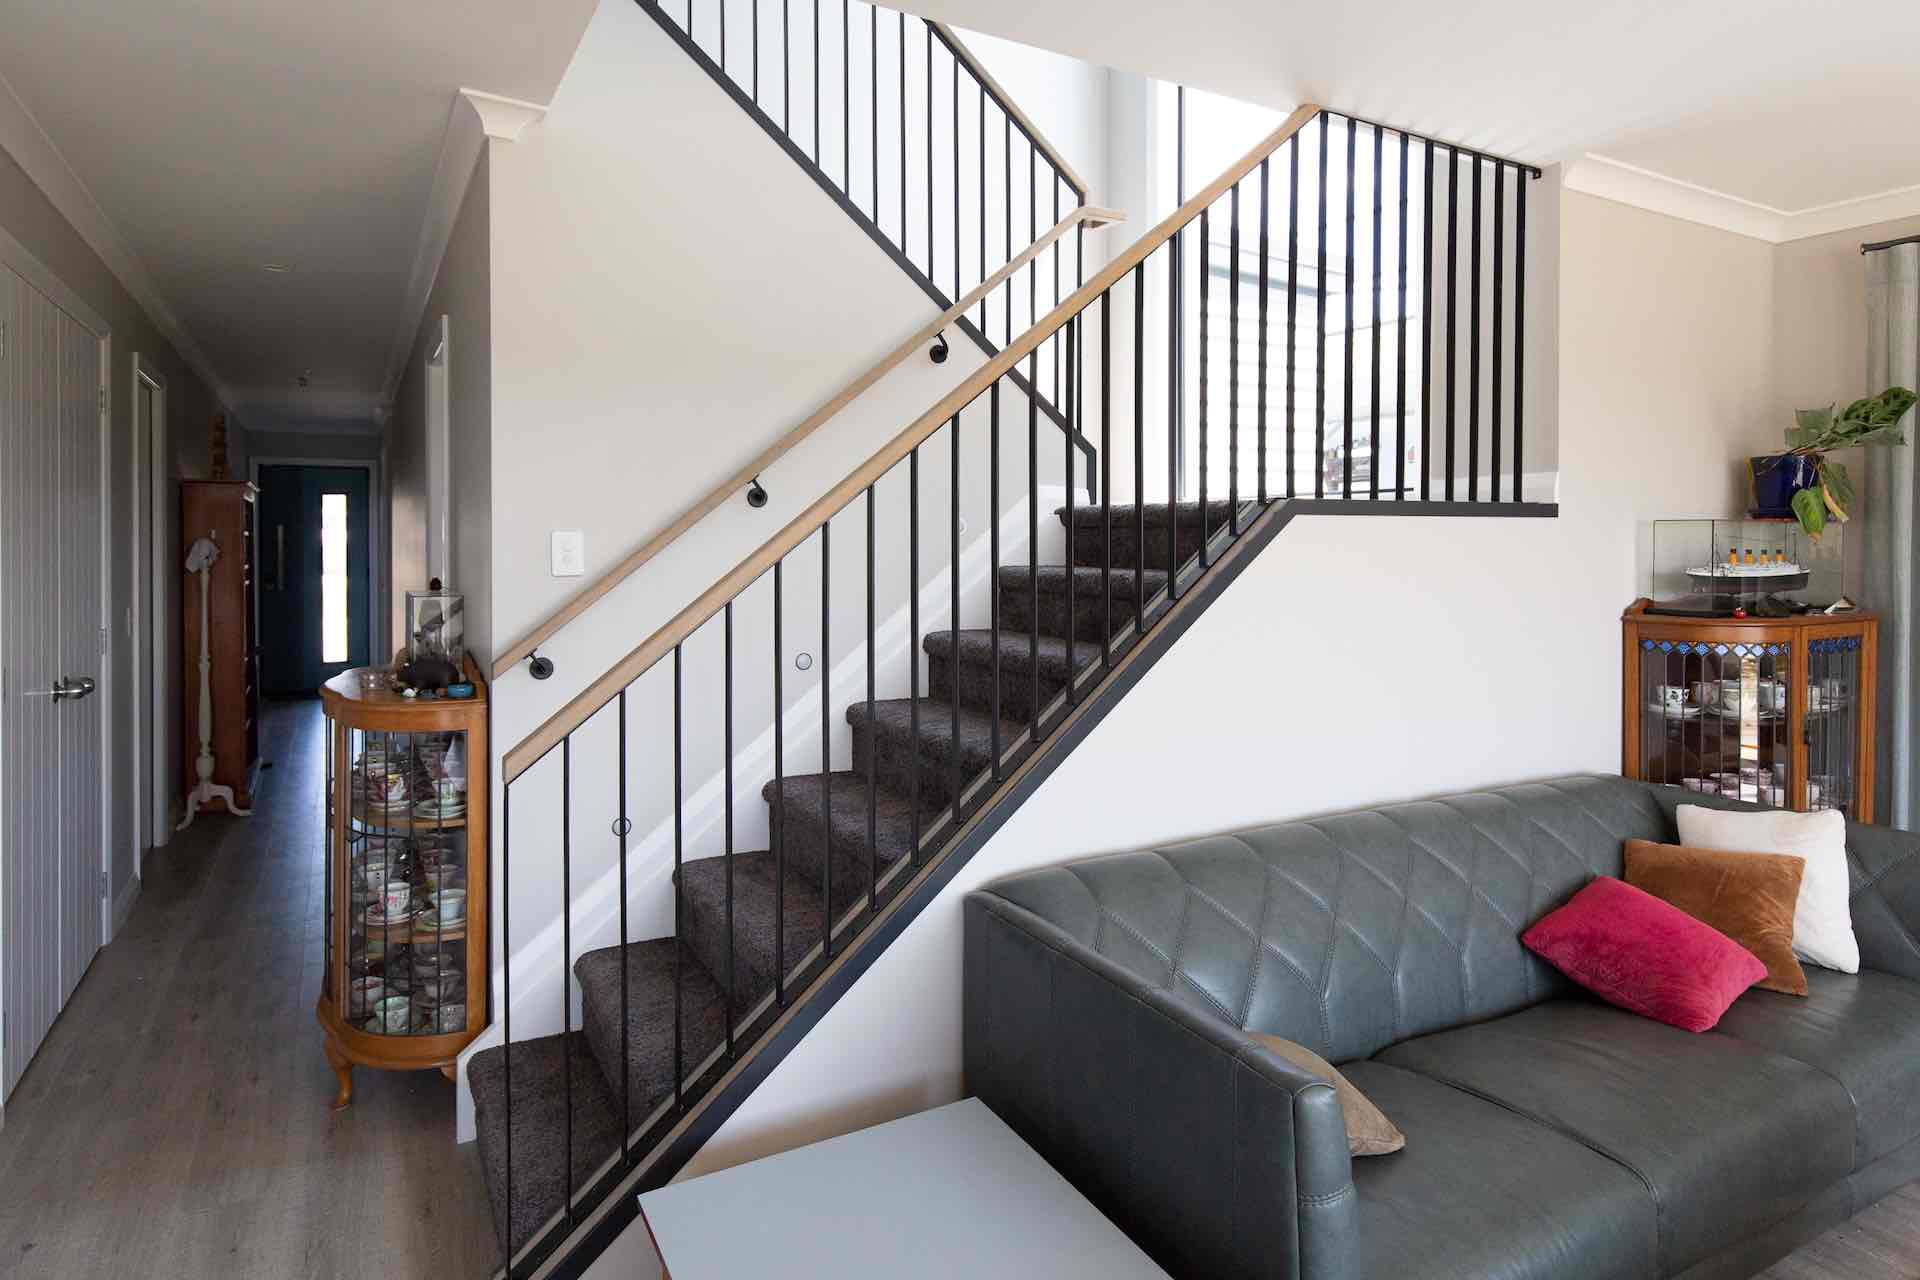 Stairworks can build you a new handrail and balustrade system at an affordable price.